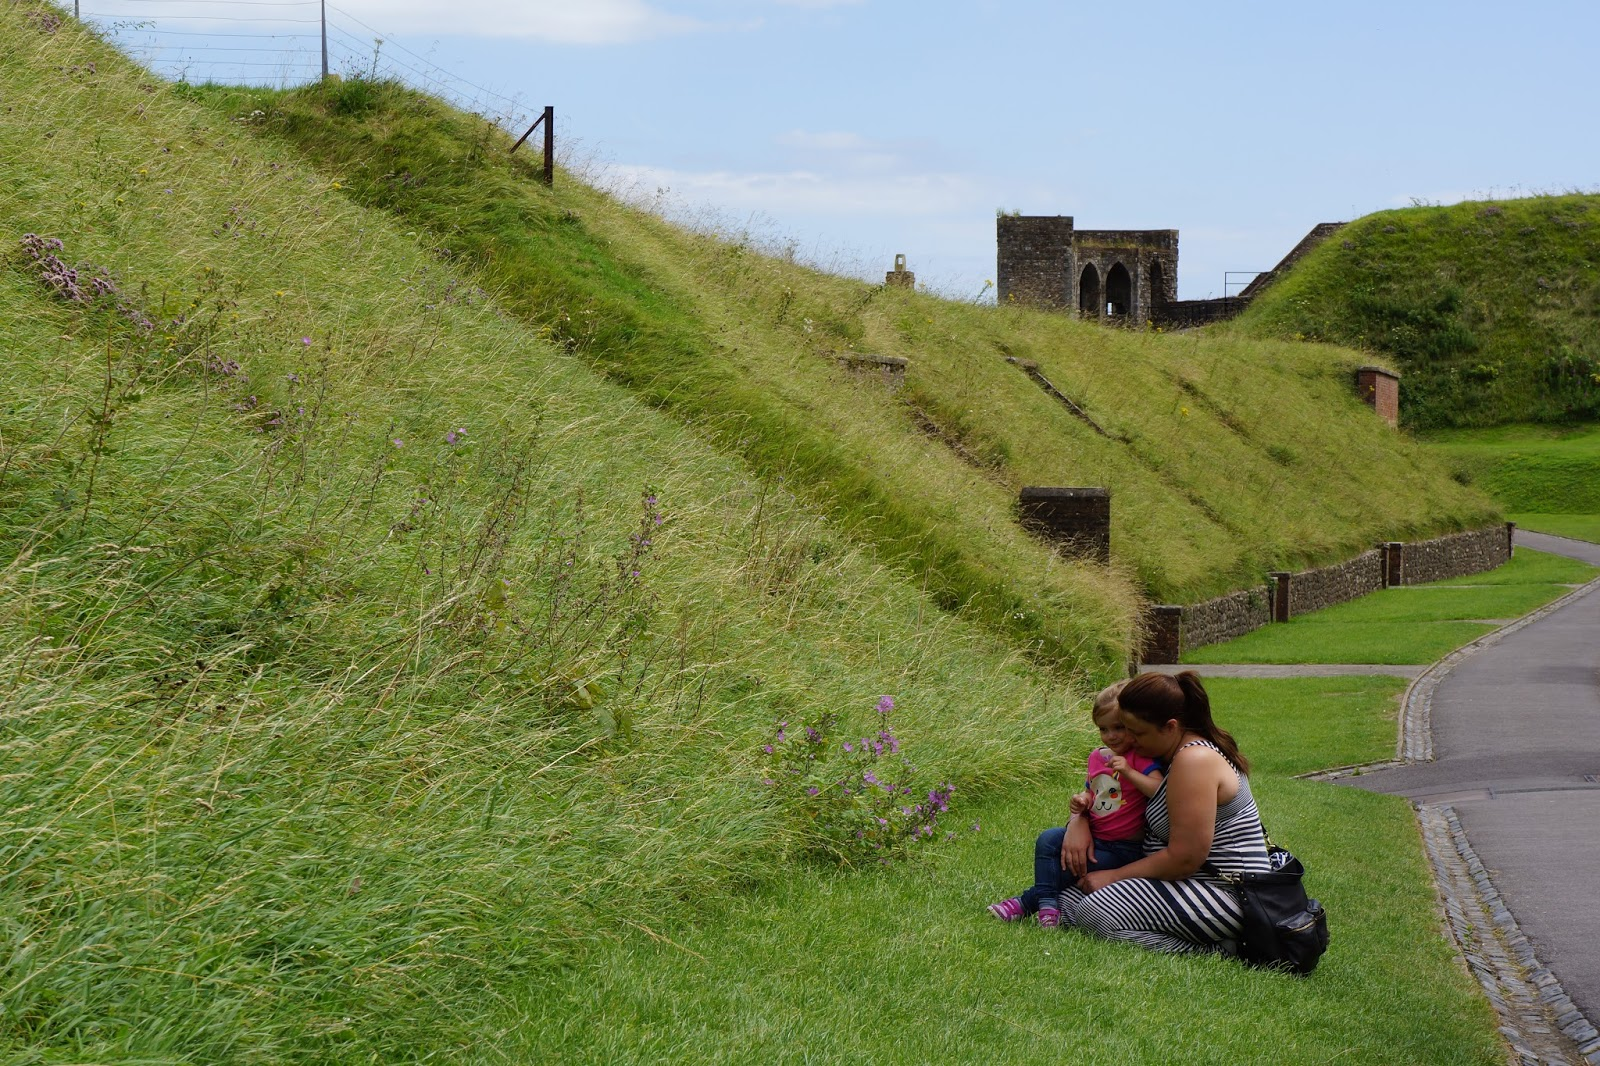 mum and daughter near a moat at dover castle